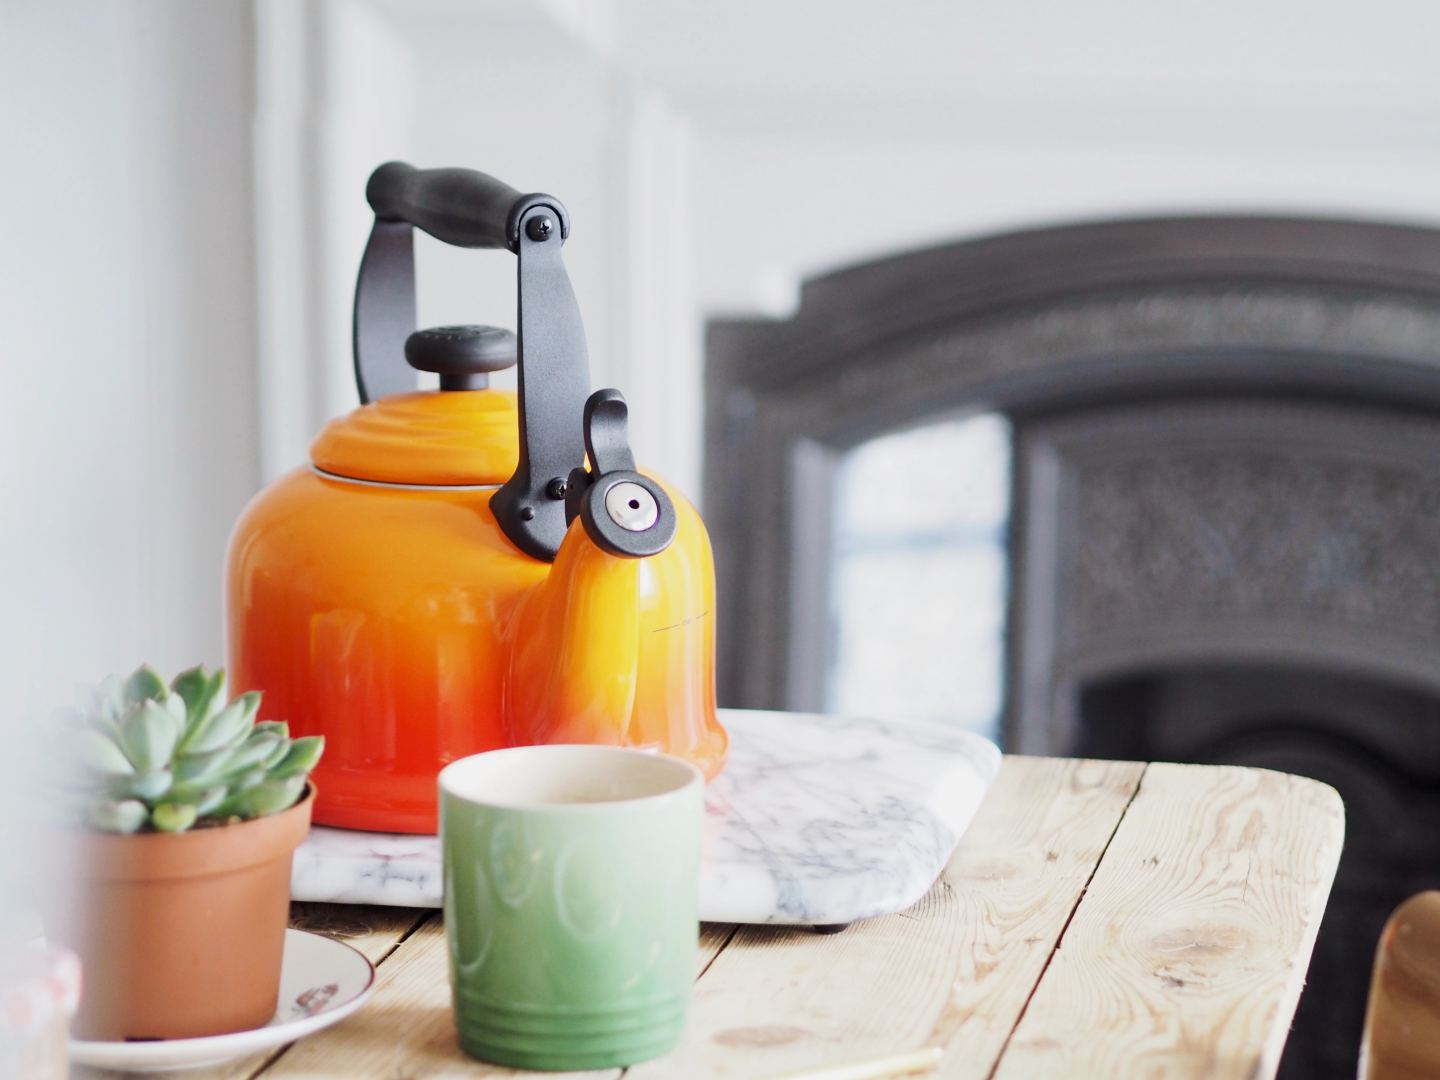 house of fraser le creuset orange volcanic blue mug and green mug